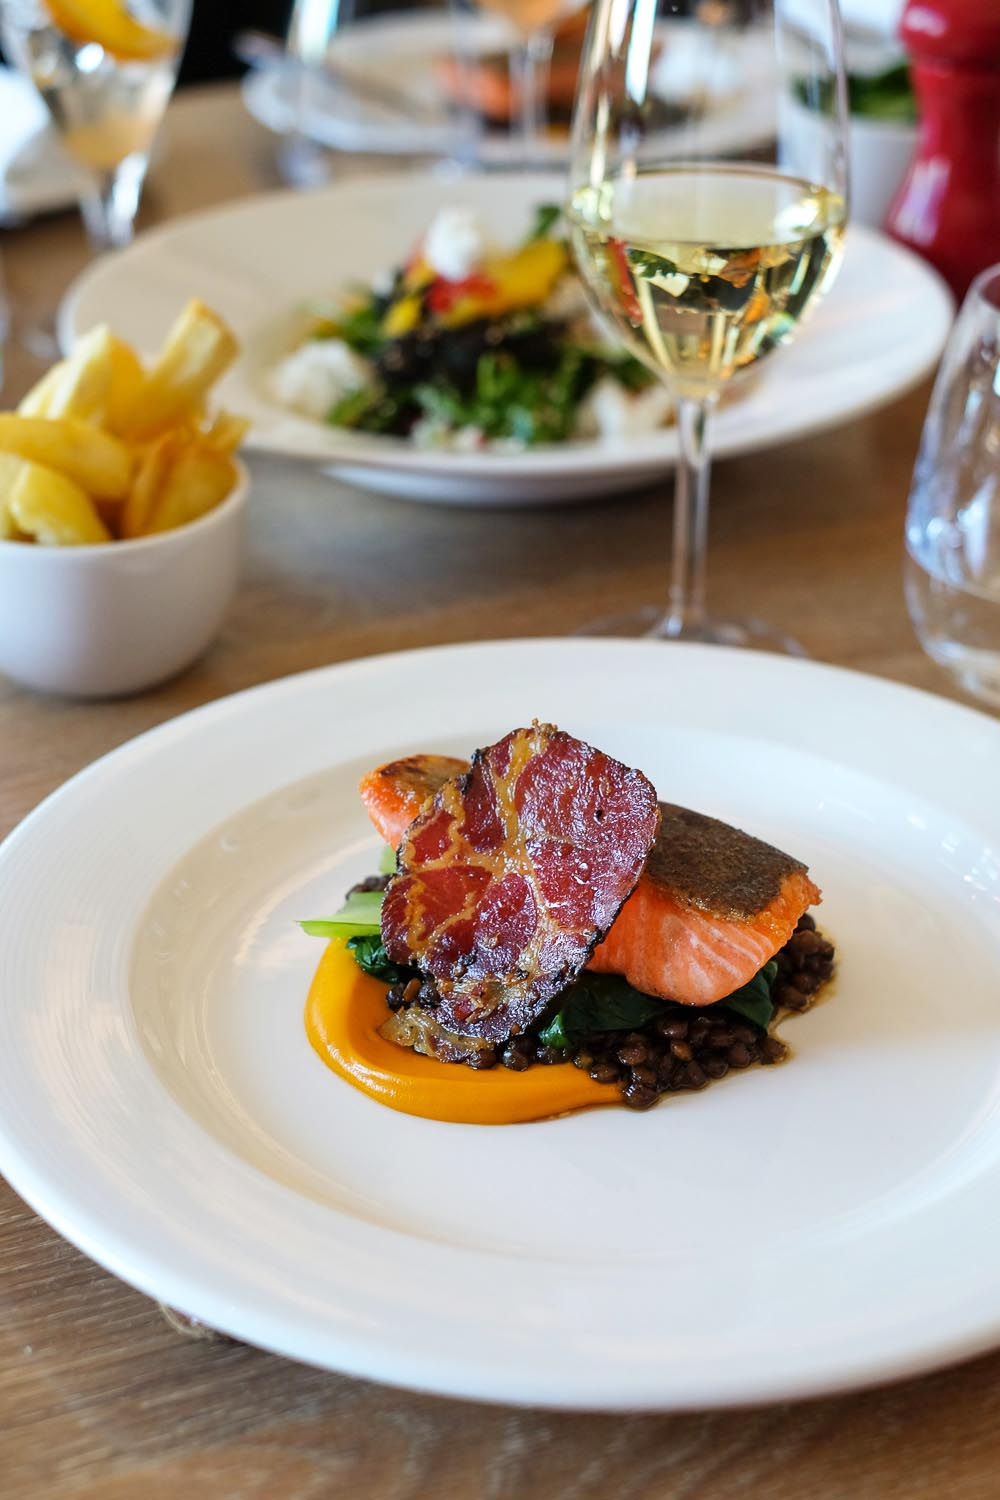 Lunch at The Scarlet Hotel in Mawgan Porth, Cornwall | A 5-Day Guide to Beautiful Cornwall by Mondomulia